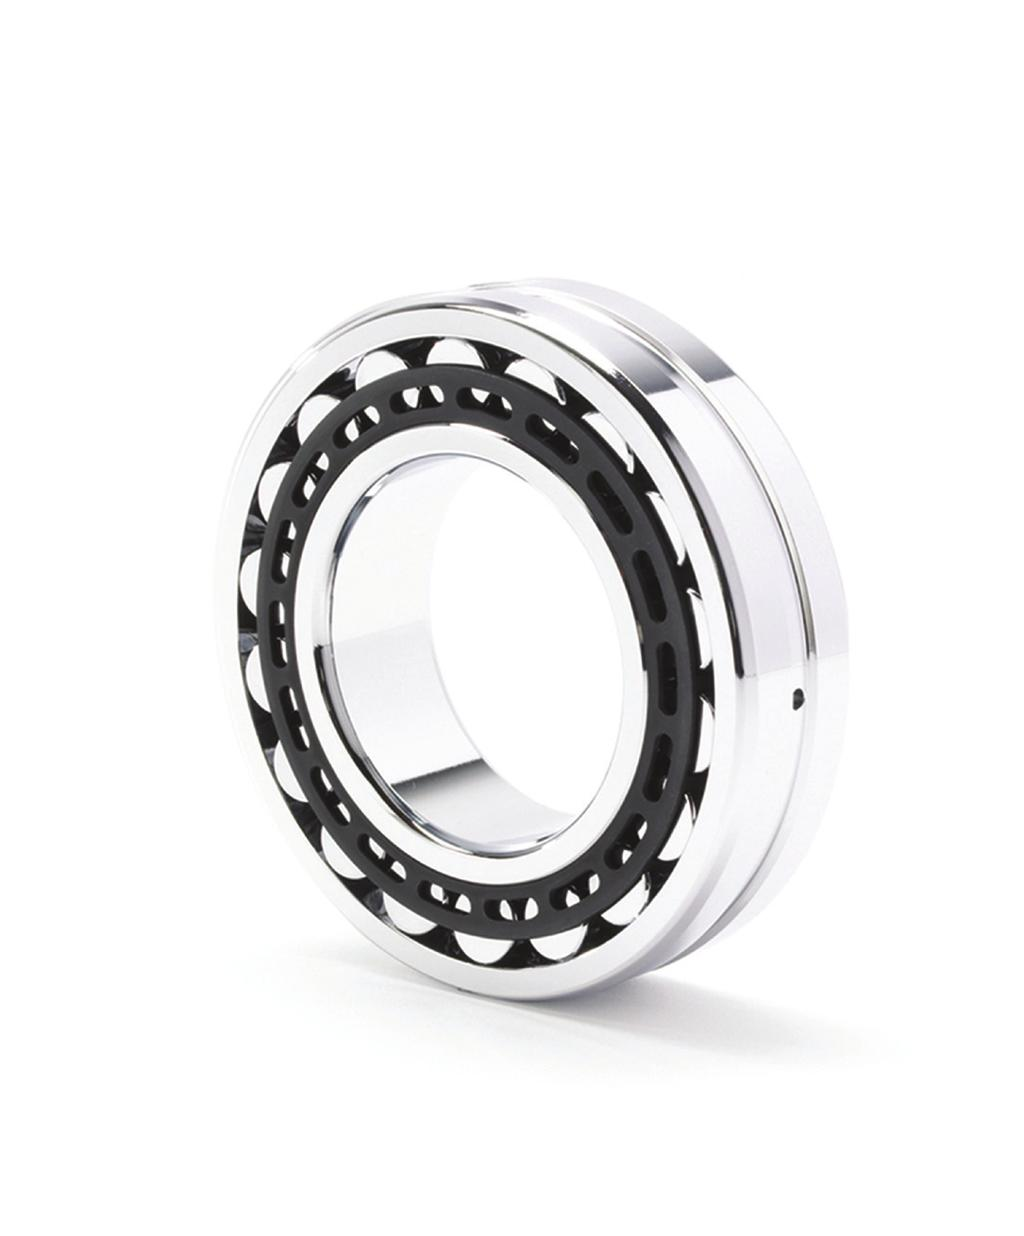 TIMKEN SPHERICAL ROLLER BEARING OFFERING 2 23 20 K EJ W33 C3 2-Row SRB Dimension Series Spherical roller bearings are broken down into a series based on their width (0, 1, 2, 3, 4) and outside